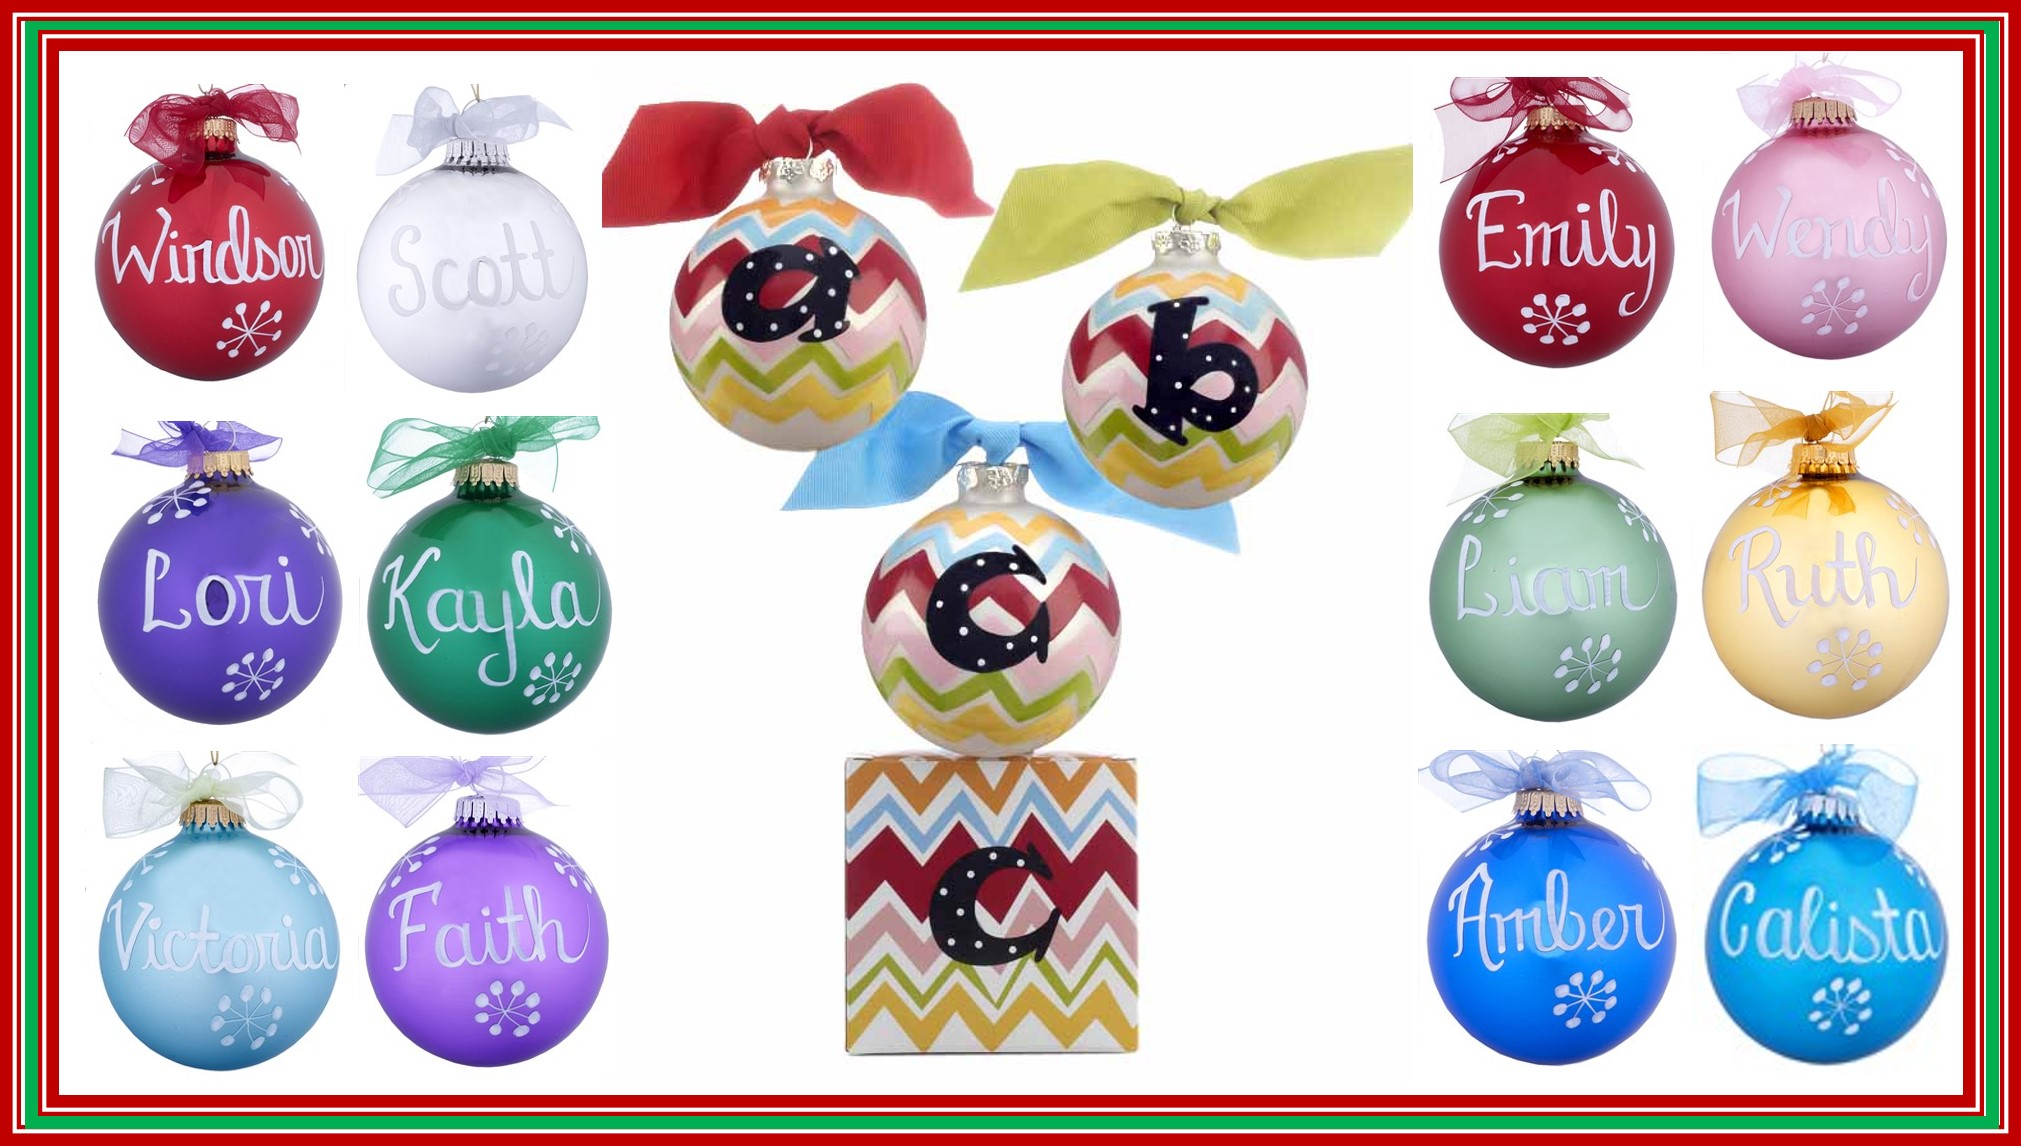 Initial Ornaments and Birthstone Ornaments. | OrnamentShop.com